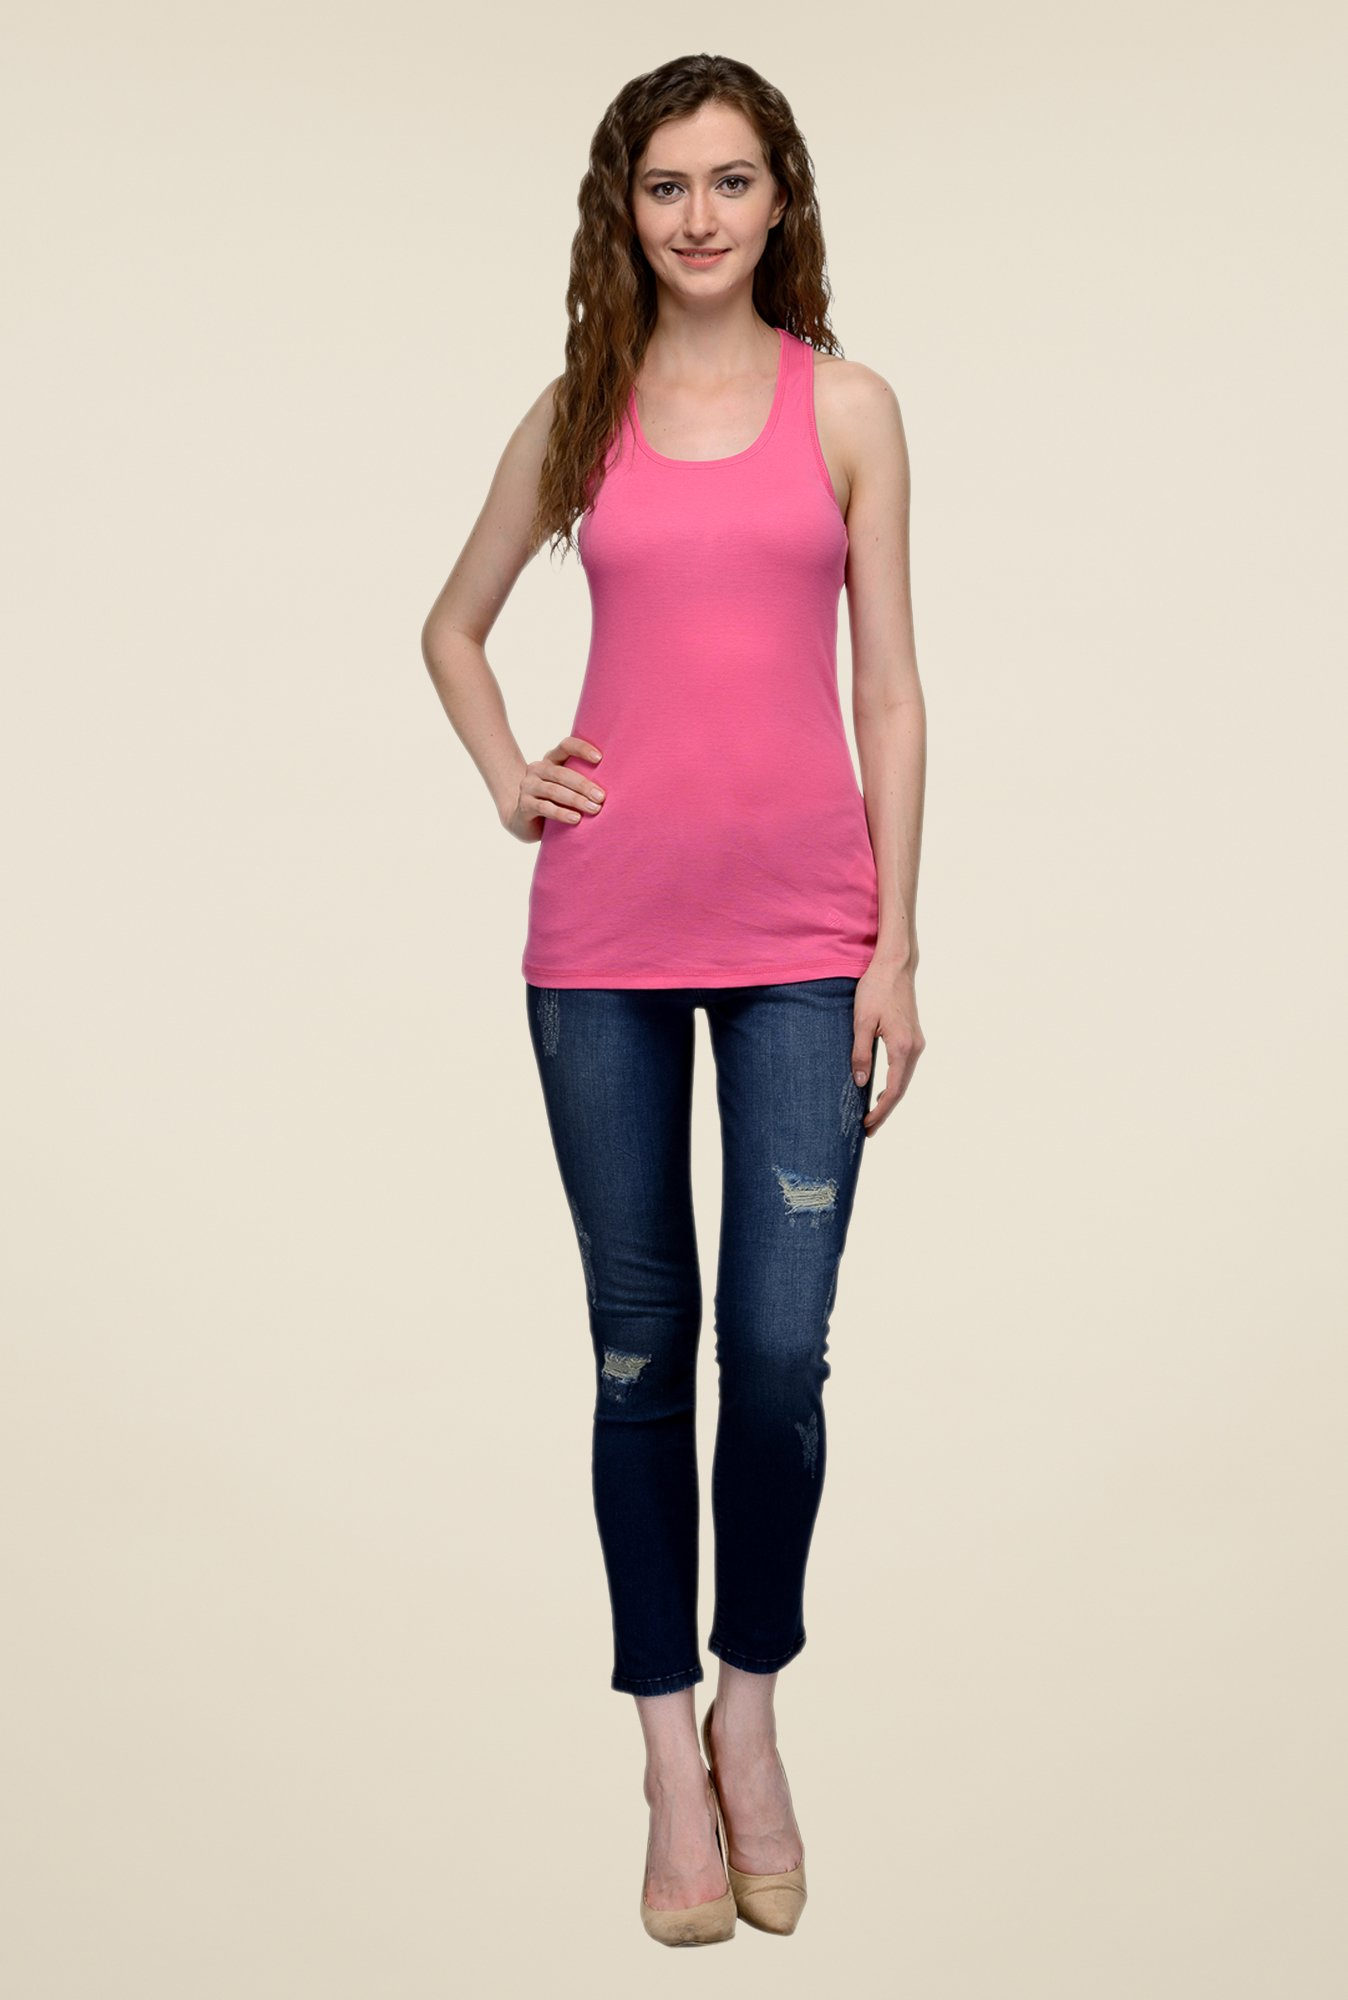 United Colors of Benetton Pink Solid Singlet